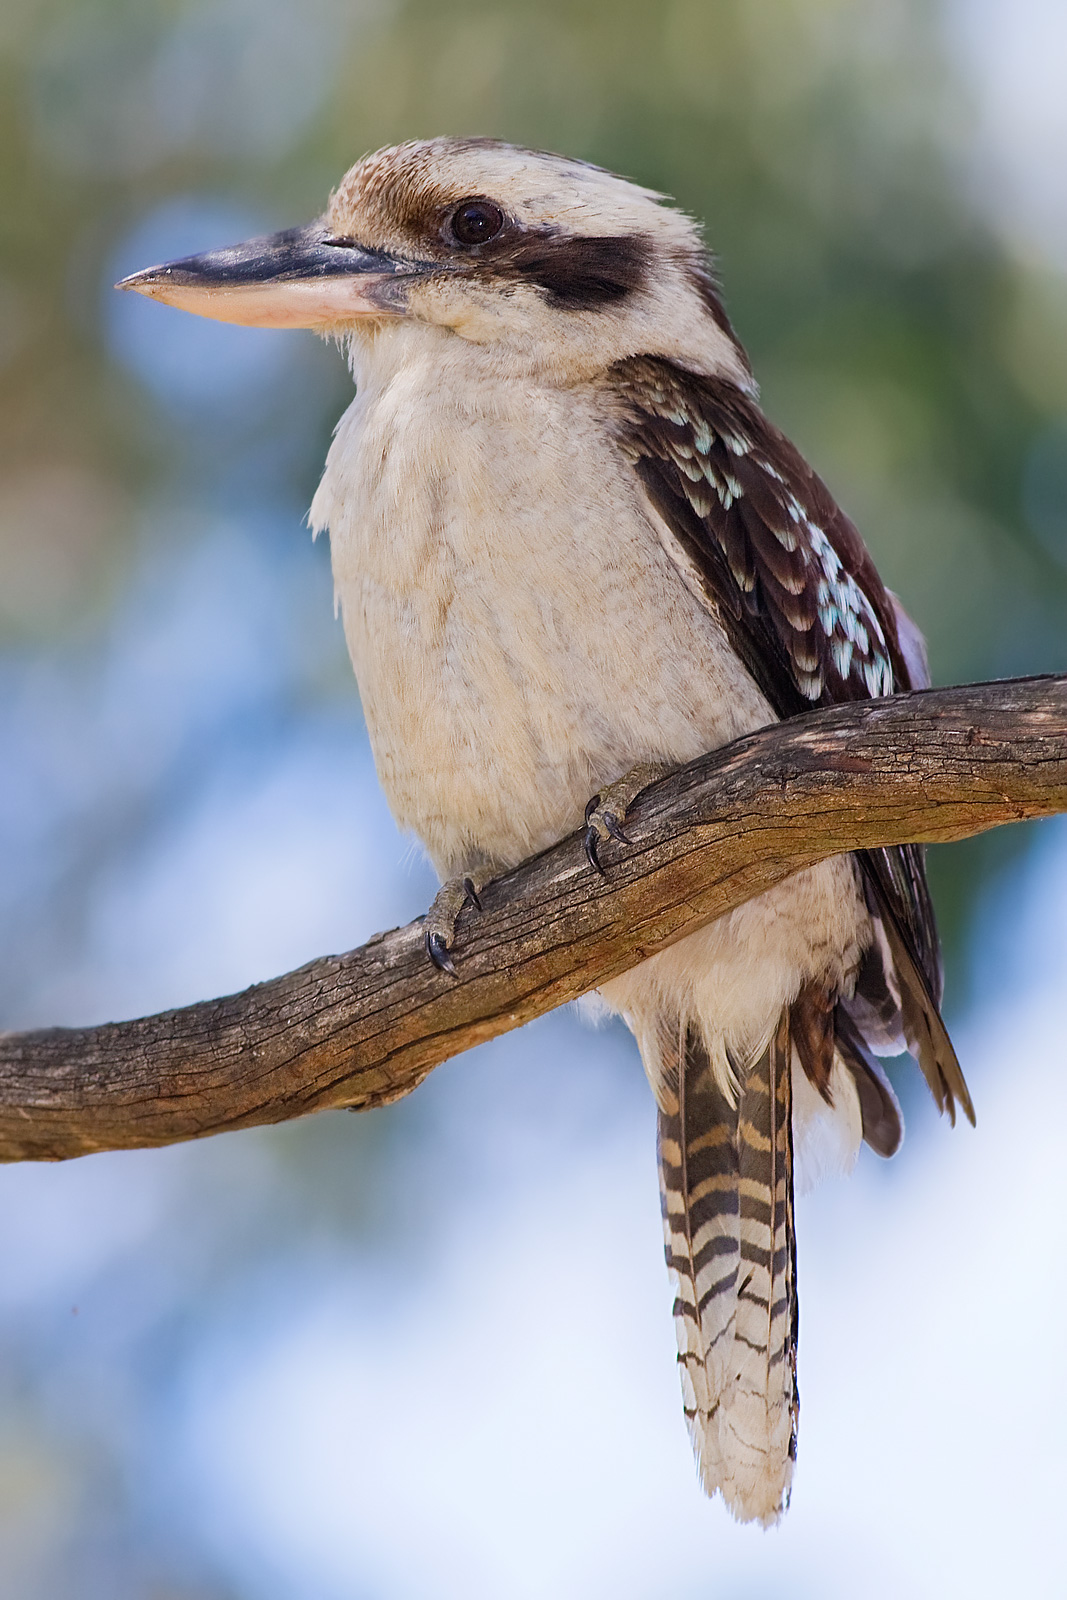 Laughing Kookaburra perched in a eucalypt tree. Taken in December 2008 in Victoria, Australia by Fir0002